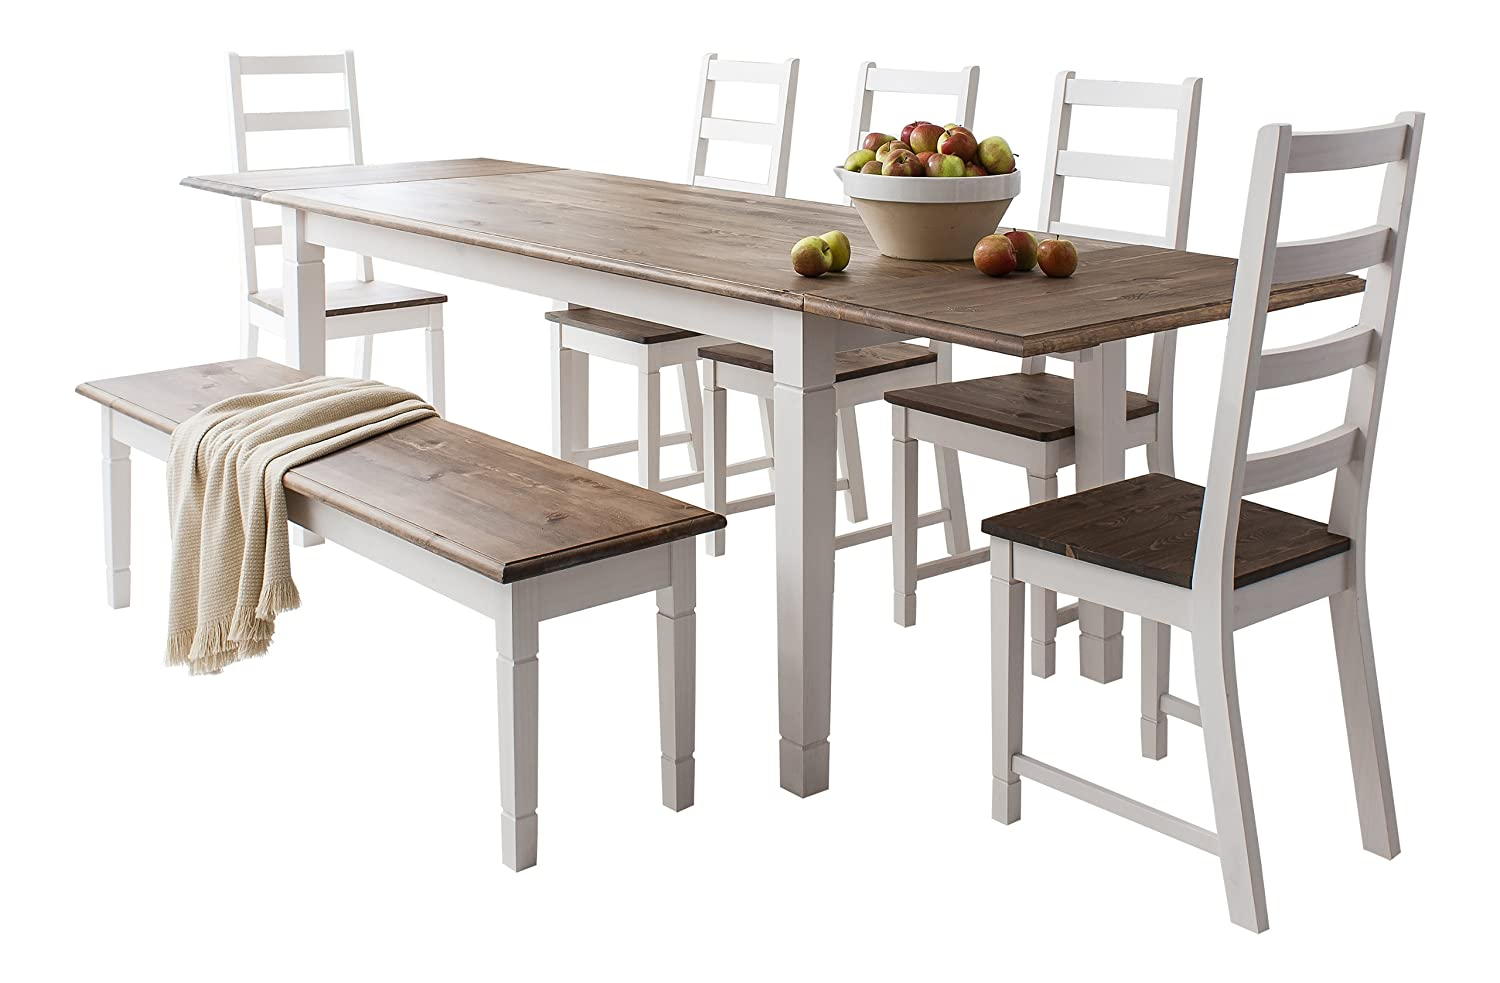 Table And 5 Chairs And Bench Canterbury Extending Dining Table With 2x  Extension: Amazon.co.uk: Kitchen U0026 Home